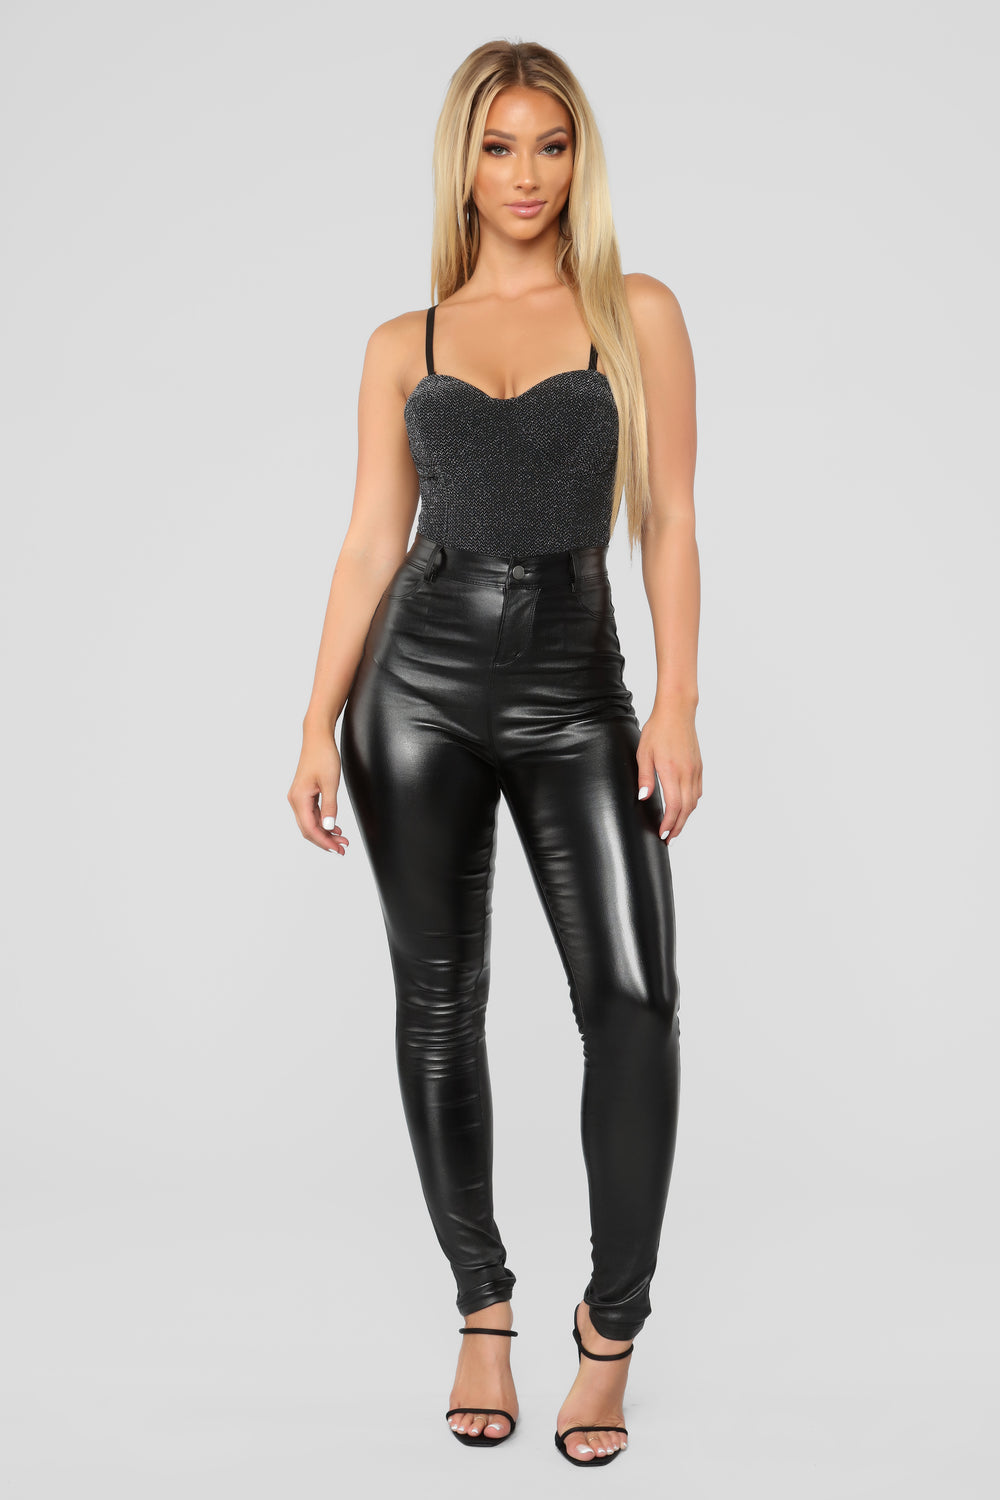 Love In This Club Bodysuit - Silver/Black